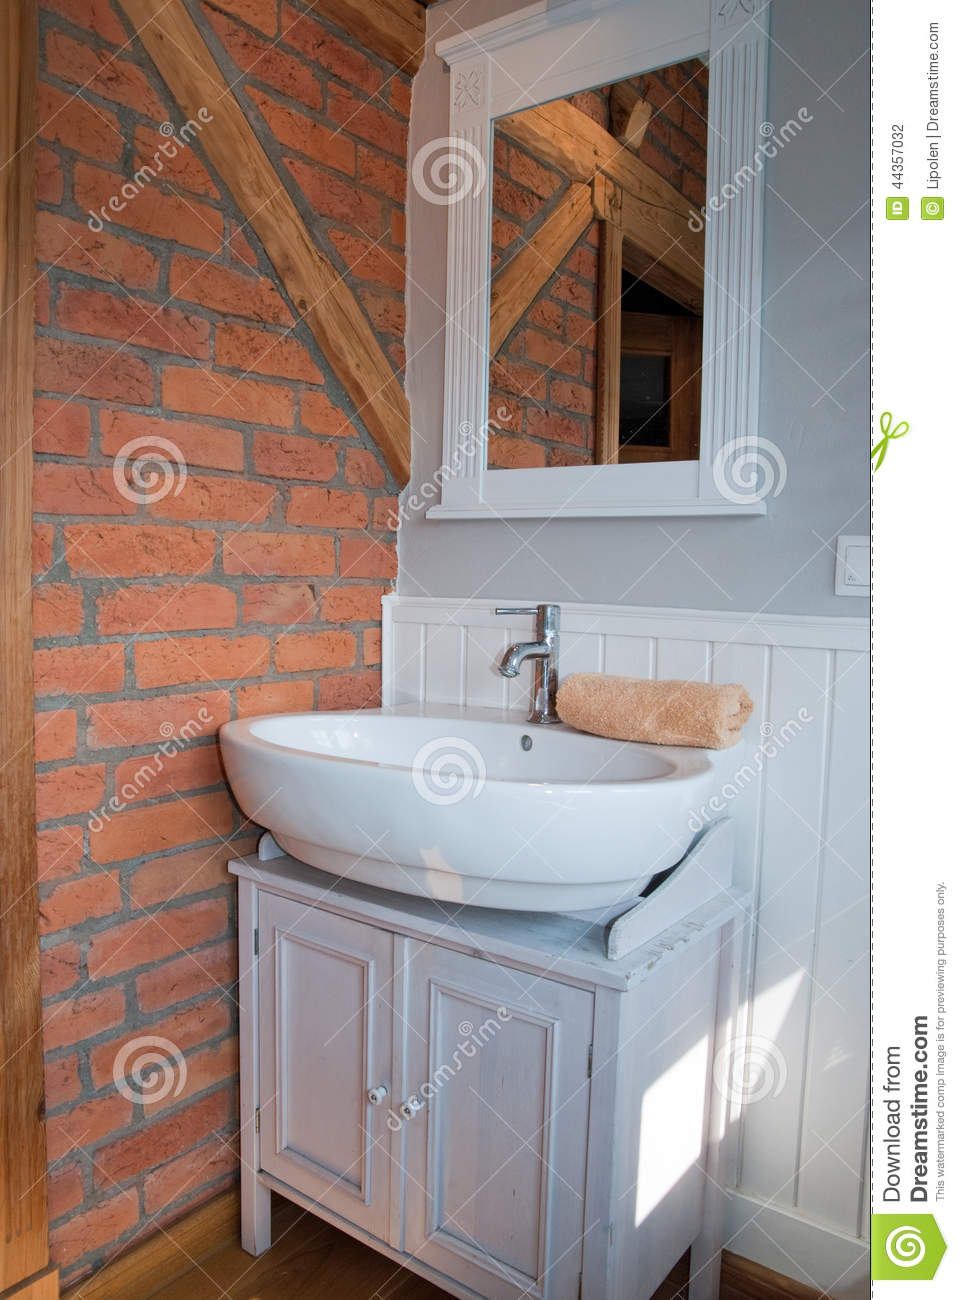 Paneling For Bathroom White Grey Bathroom With Sink Stock Photo Image Of Paneling